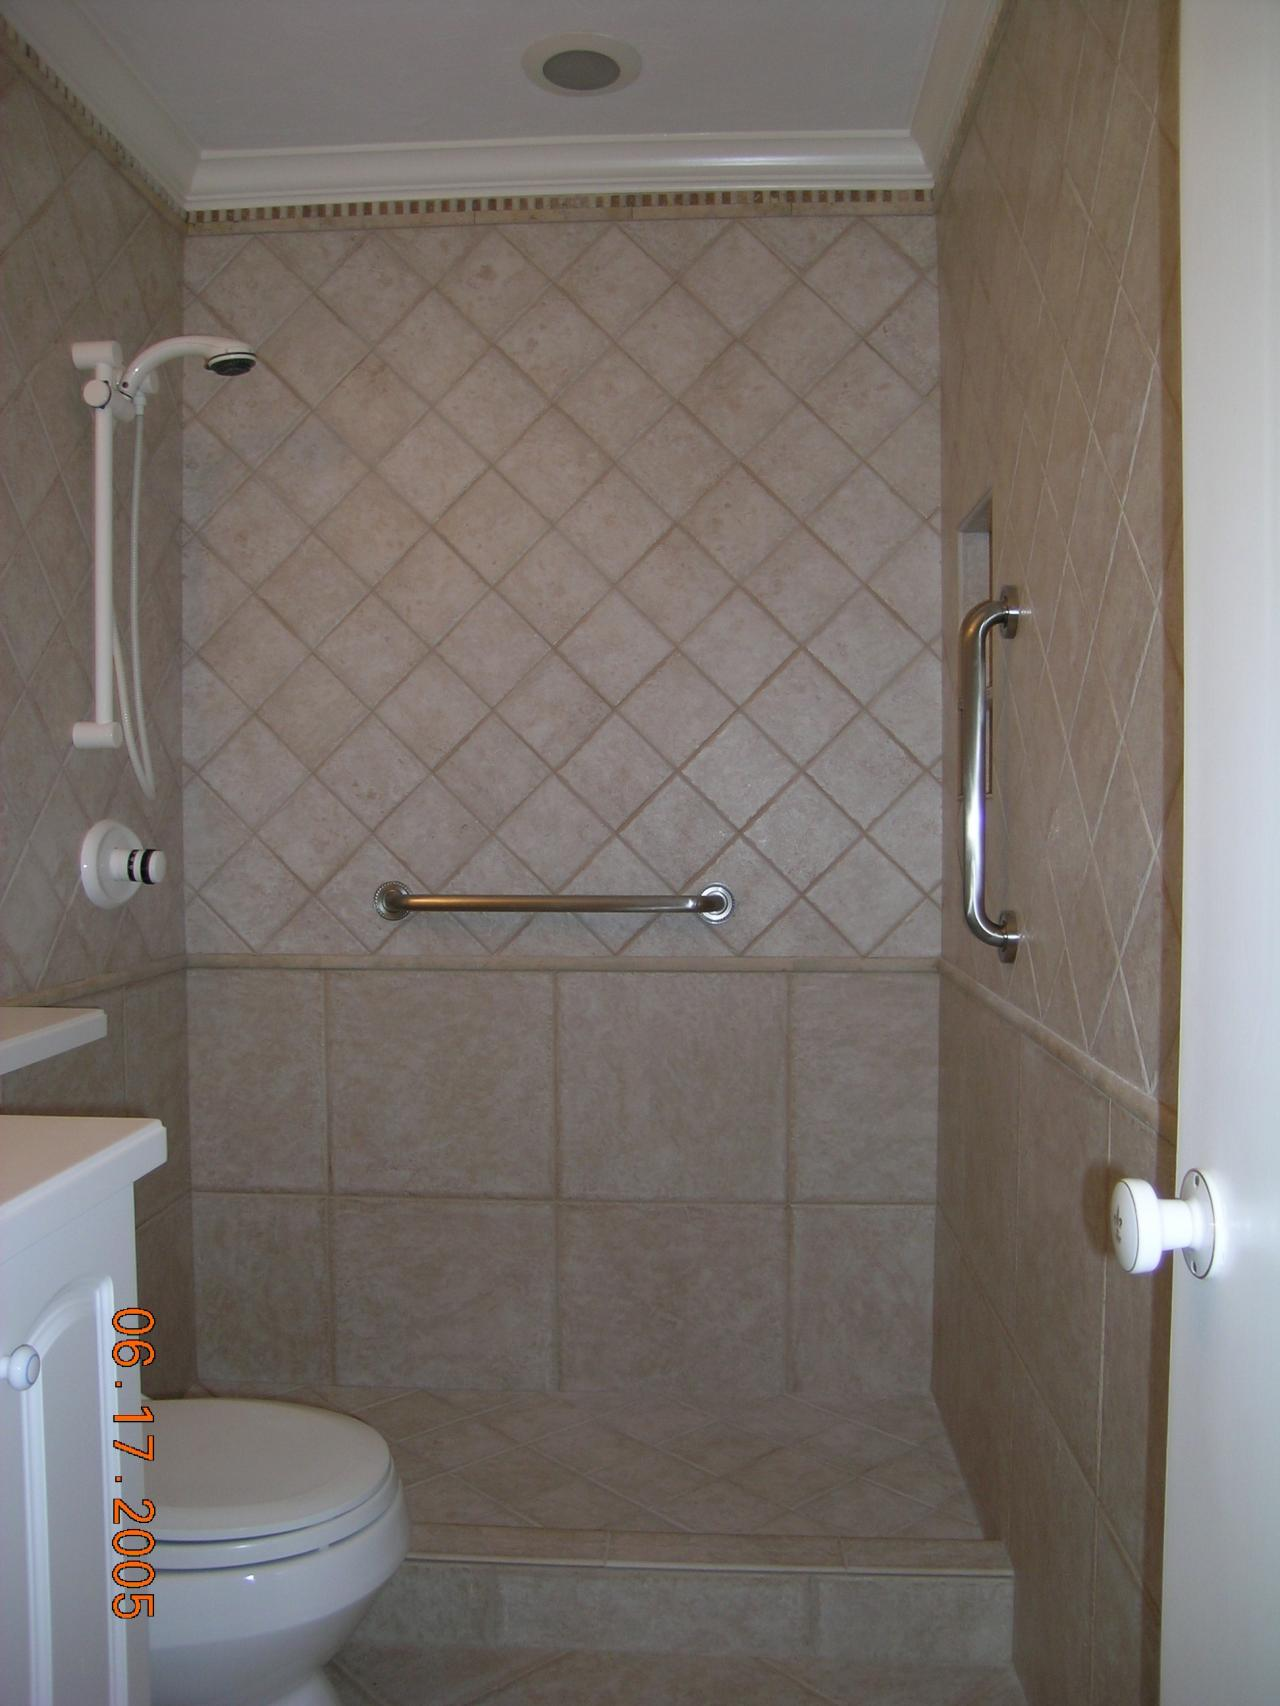 Porcelain Or Ceramic Tile For Shower Images Tile Flooring Design Ideas